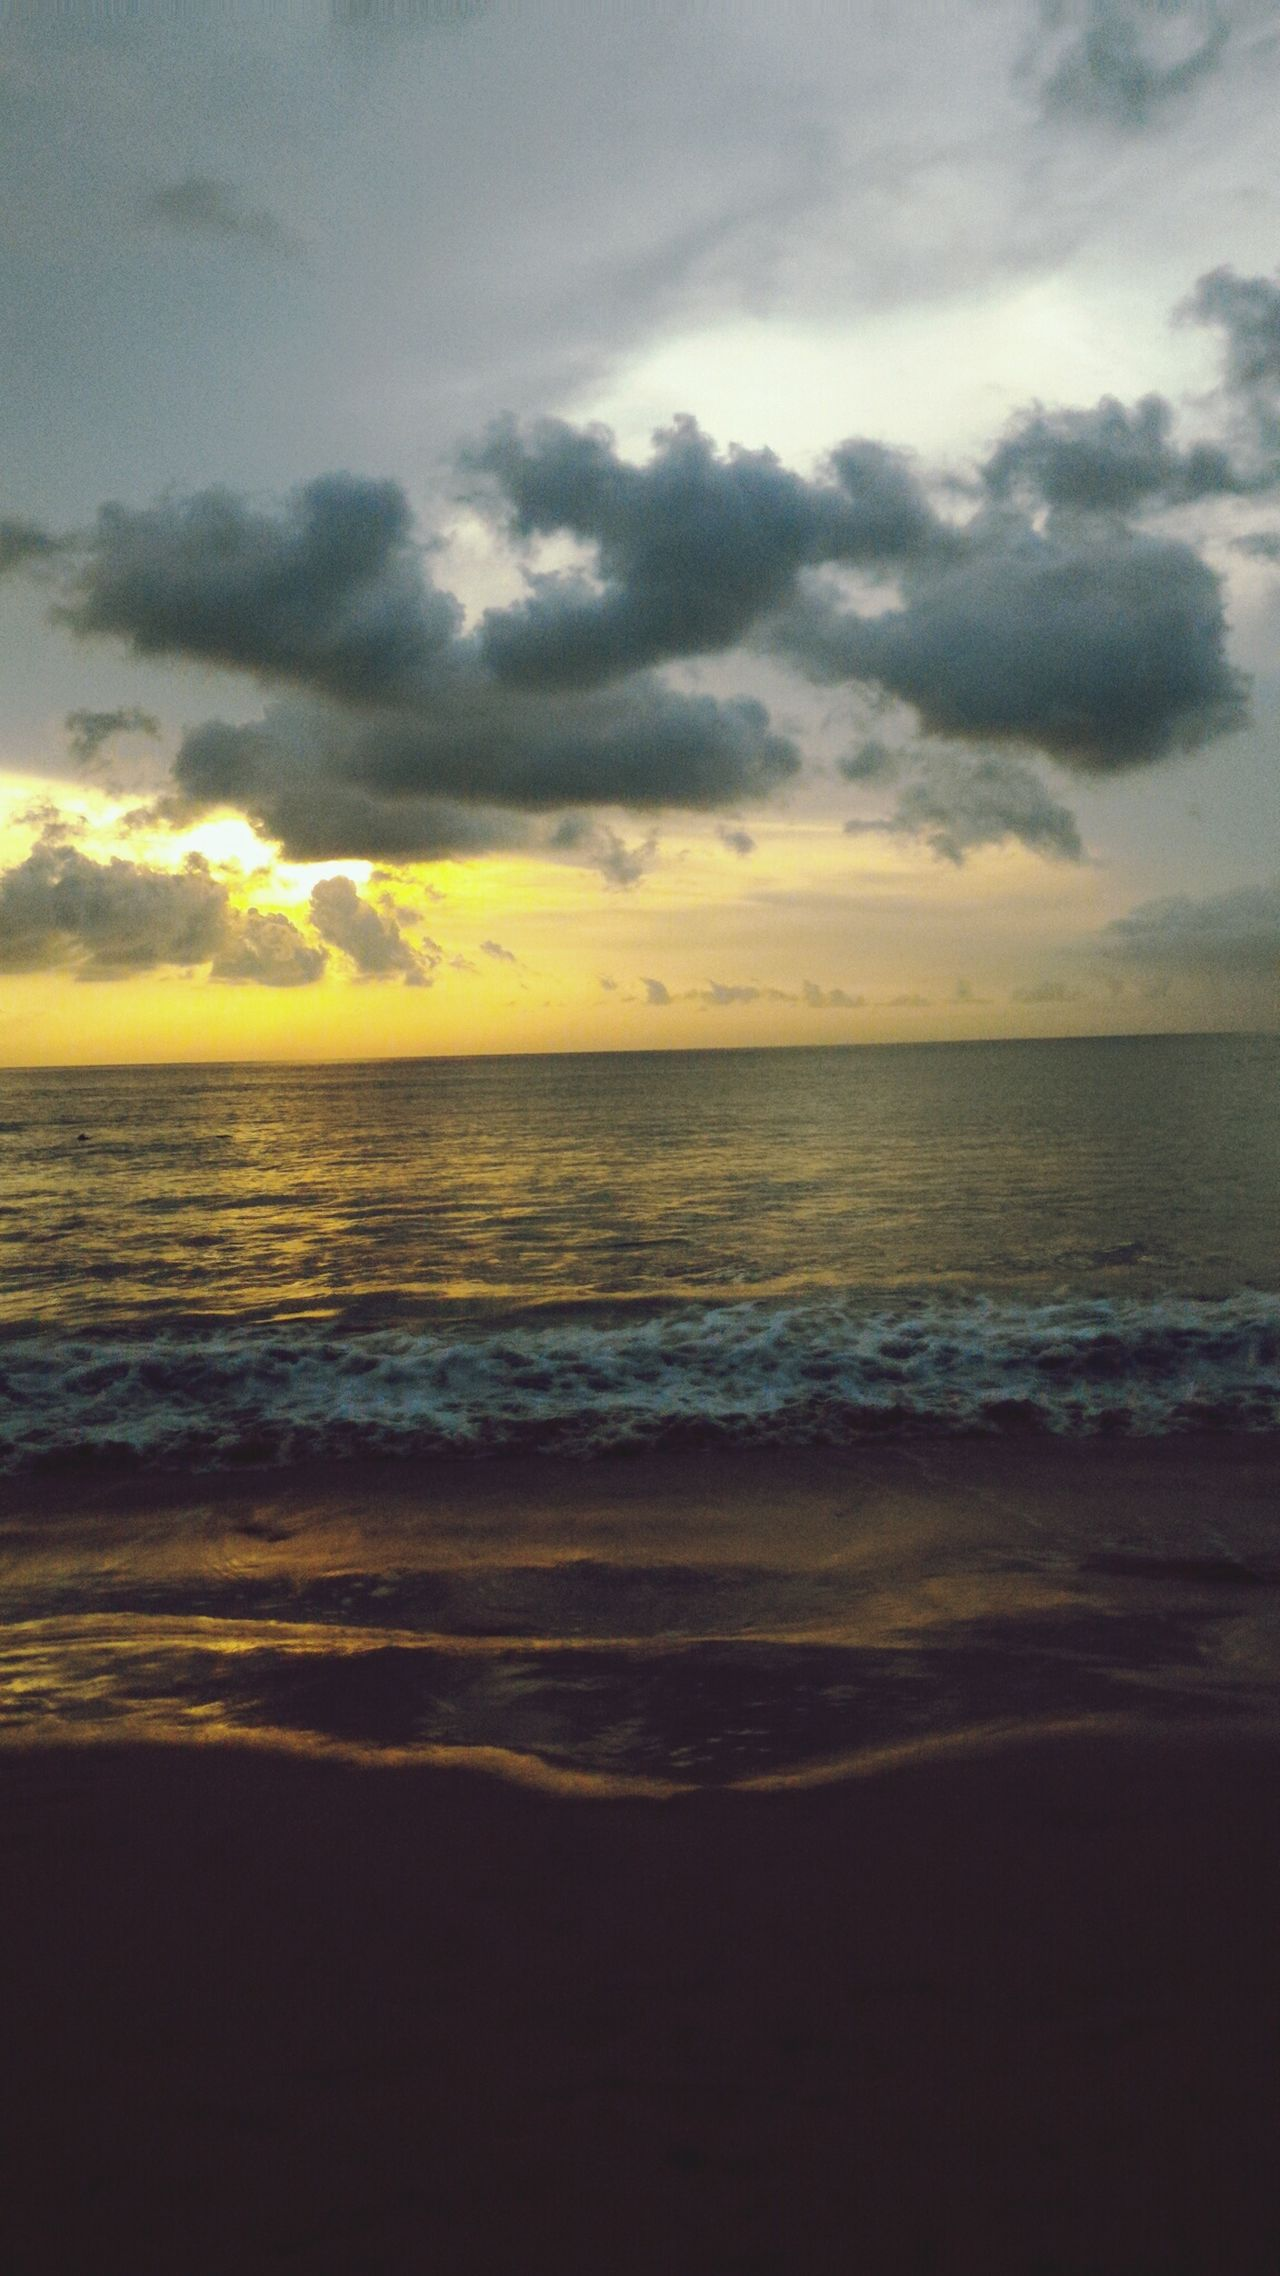 Sunset Sea Sunset Beach Horizon Over Water Cloud - Sky Dramatic Sky Sand Beauty In Nature Sky Scenics Nature Outdoors Wave No People Water Day Leisure Activity Lifestyles Holiday Trip Bali Adventure Sky And Clouds Beach On Sunset Sunset Bali, Indonesia